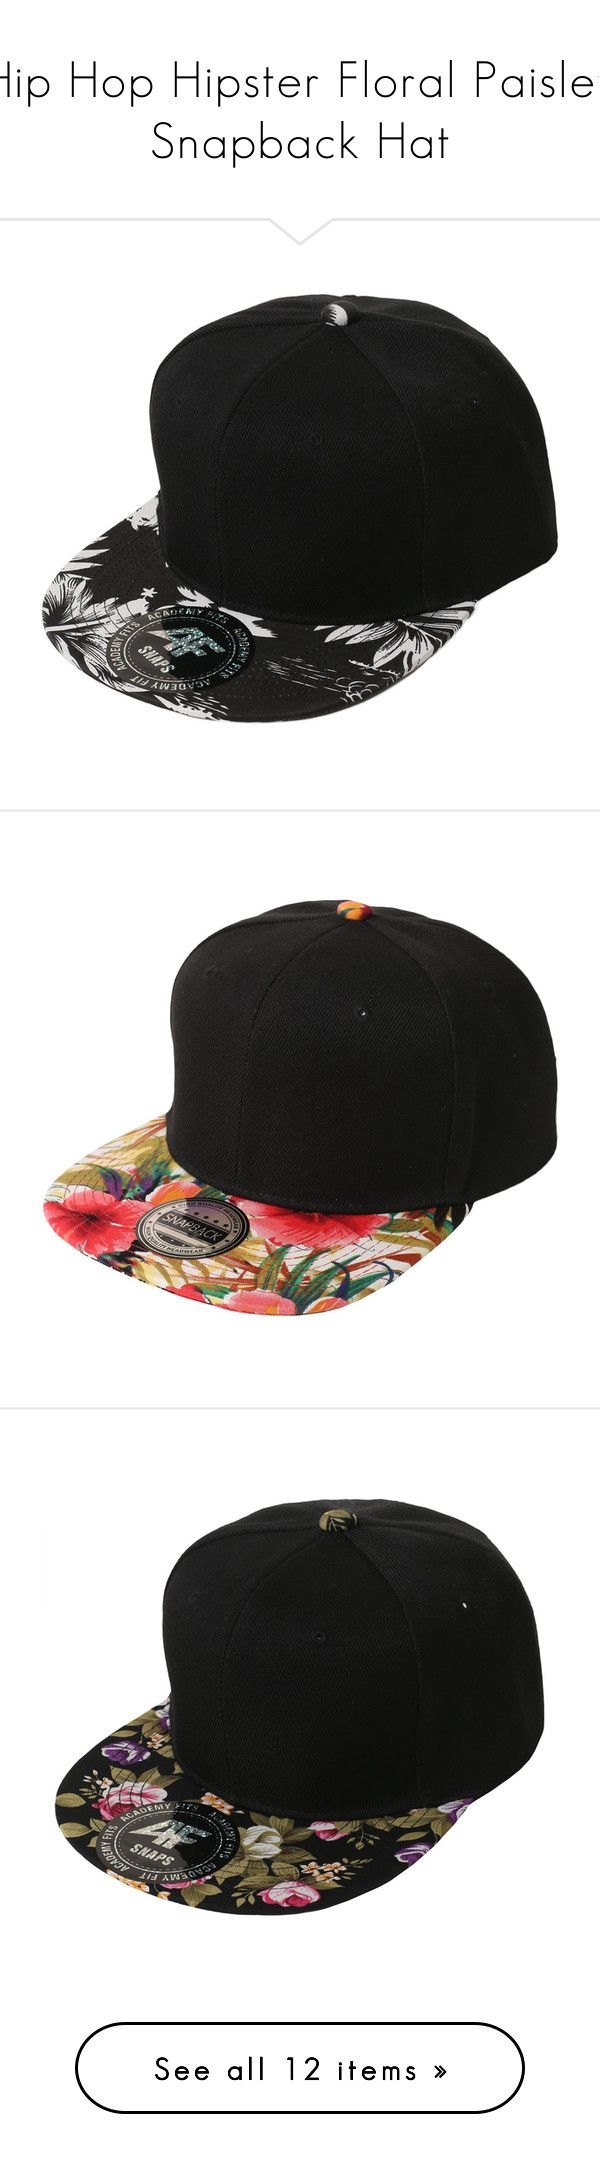 """Hip Hop Hipster Floral Paisley Snapback Hat"" by smithjay ❤ liked on Polyvore featuring accessories, hats, hipster hat, cap snapback, black white snapback hats, black and white snapback, snap back cap, men's fashion, men's accessories и men's hats"